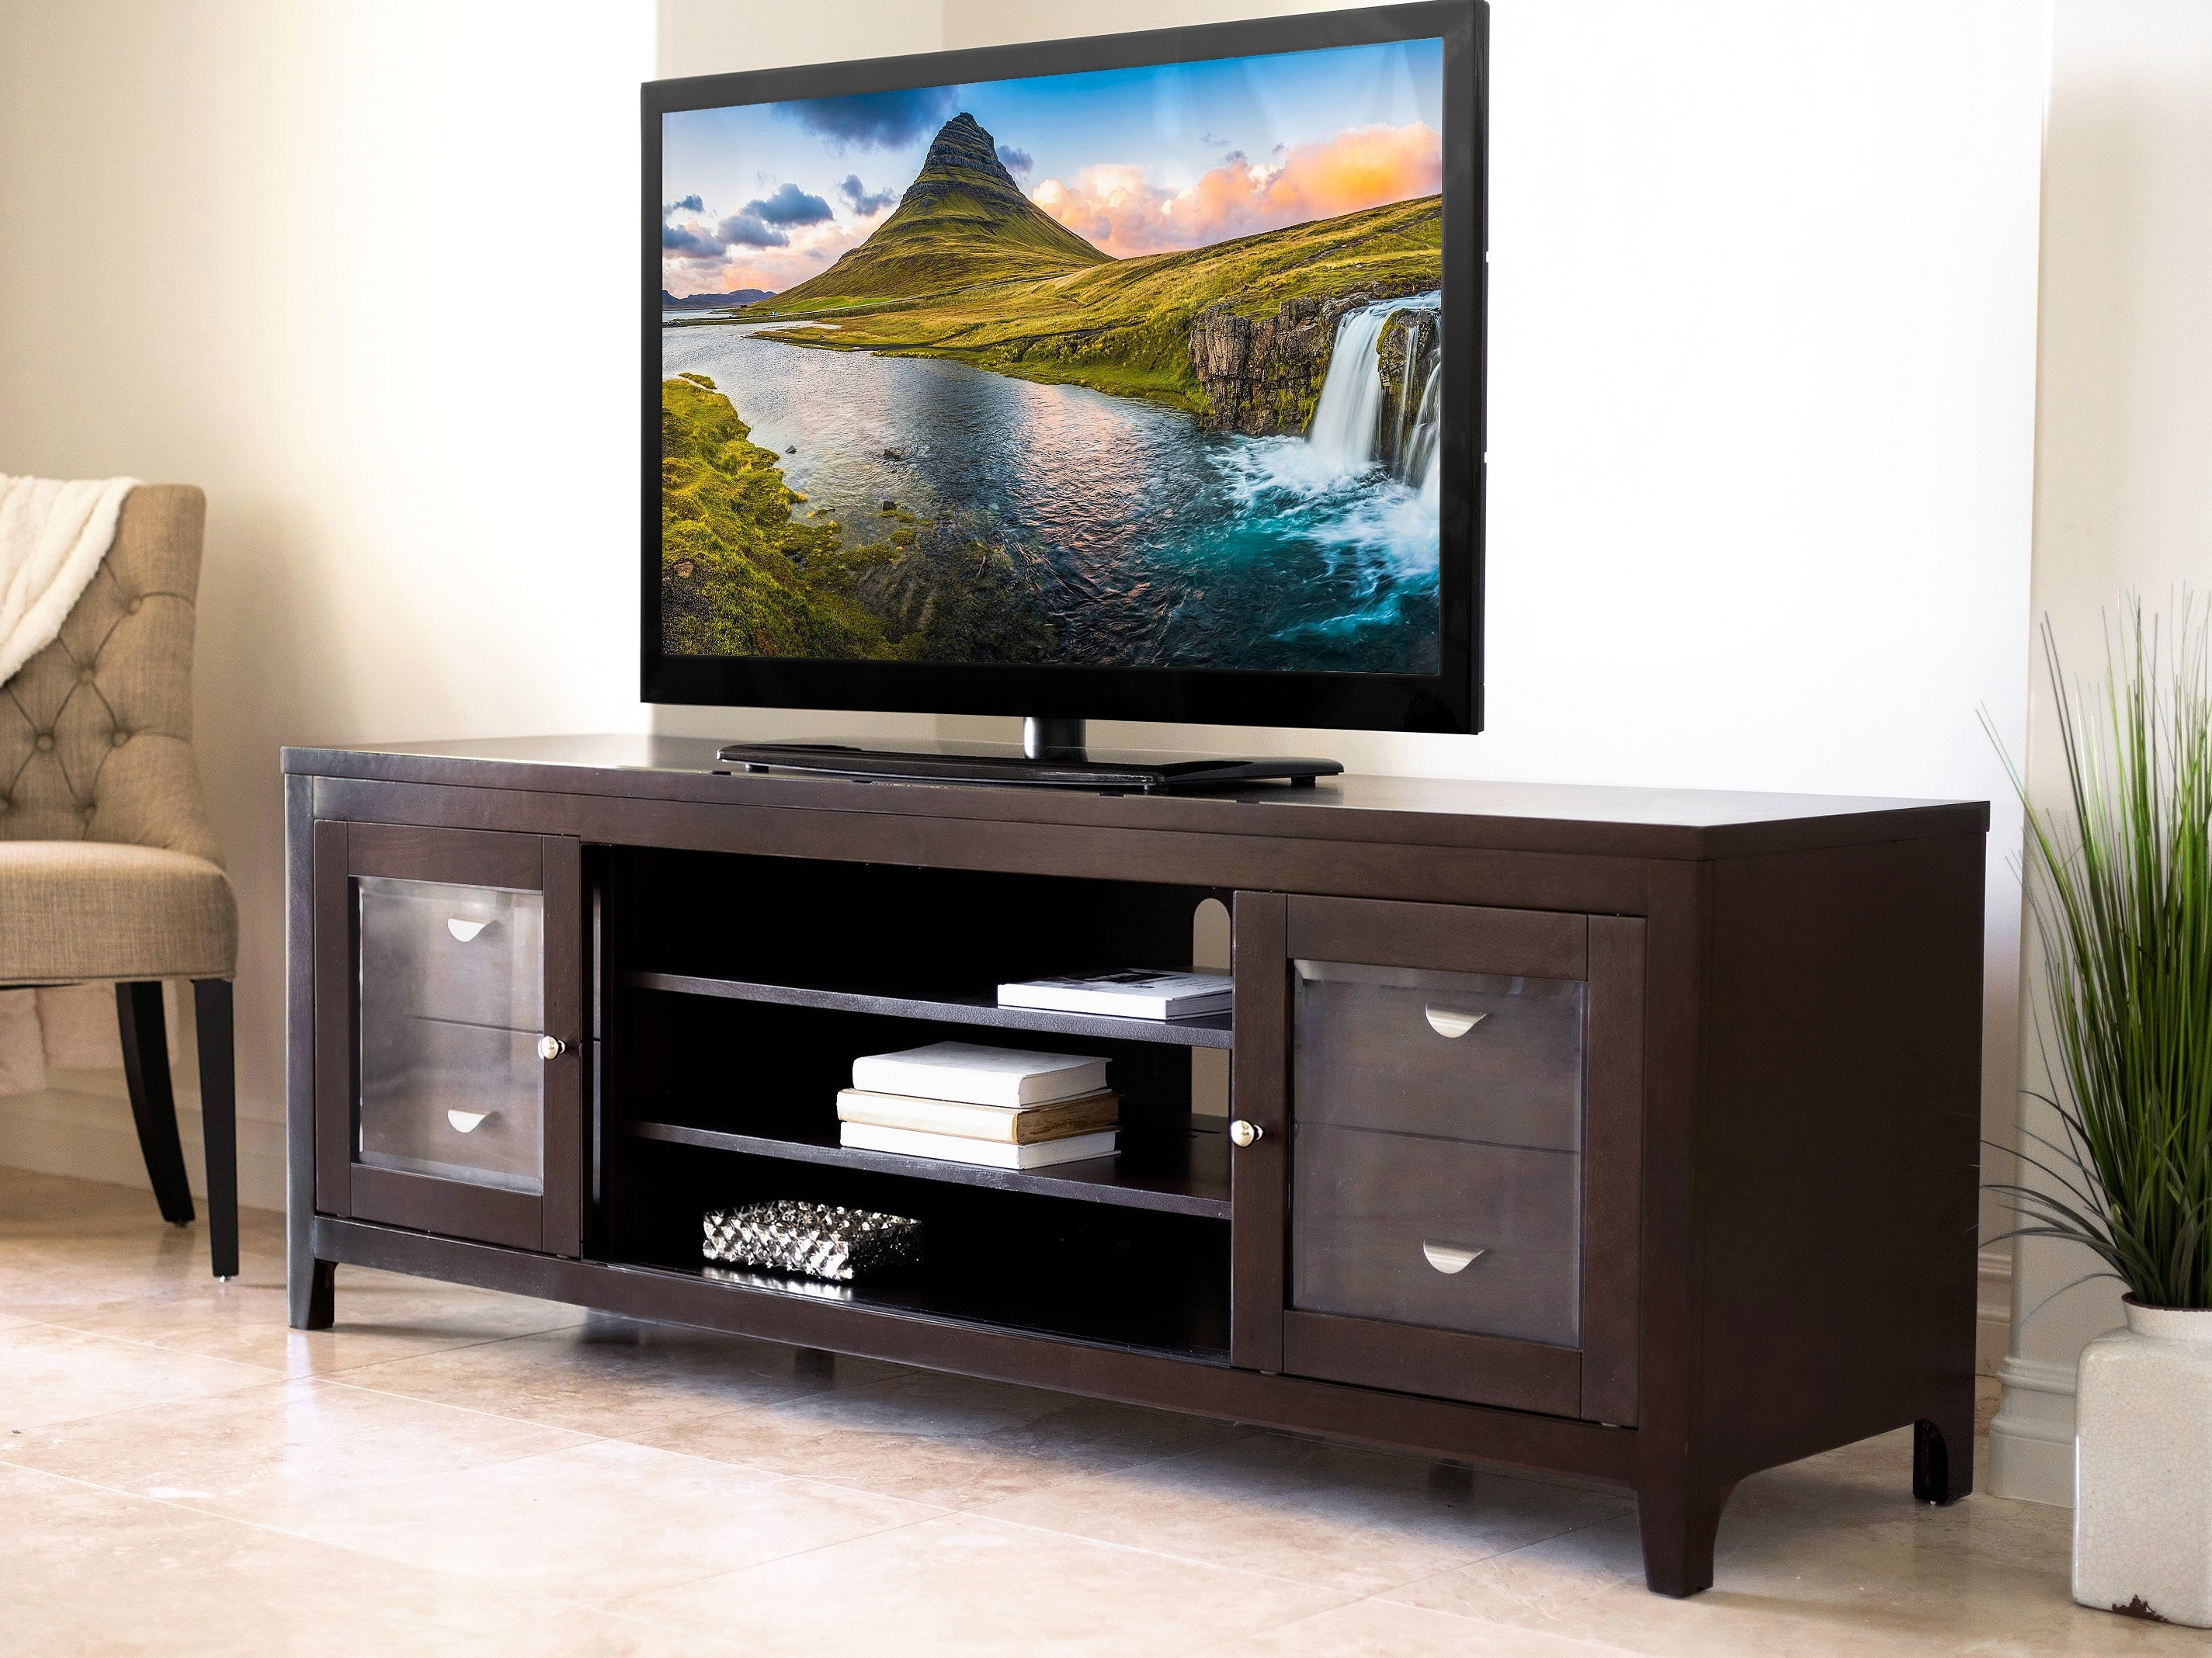 "Red Barrel Studio Spilker Tv Stand For Tvs Up To 70"" & Reviews (View 11 of 20)"